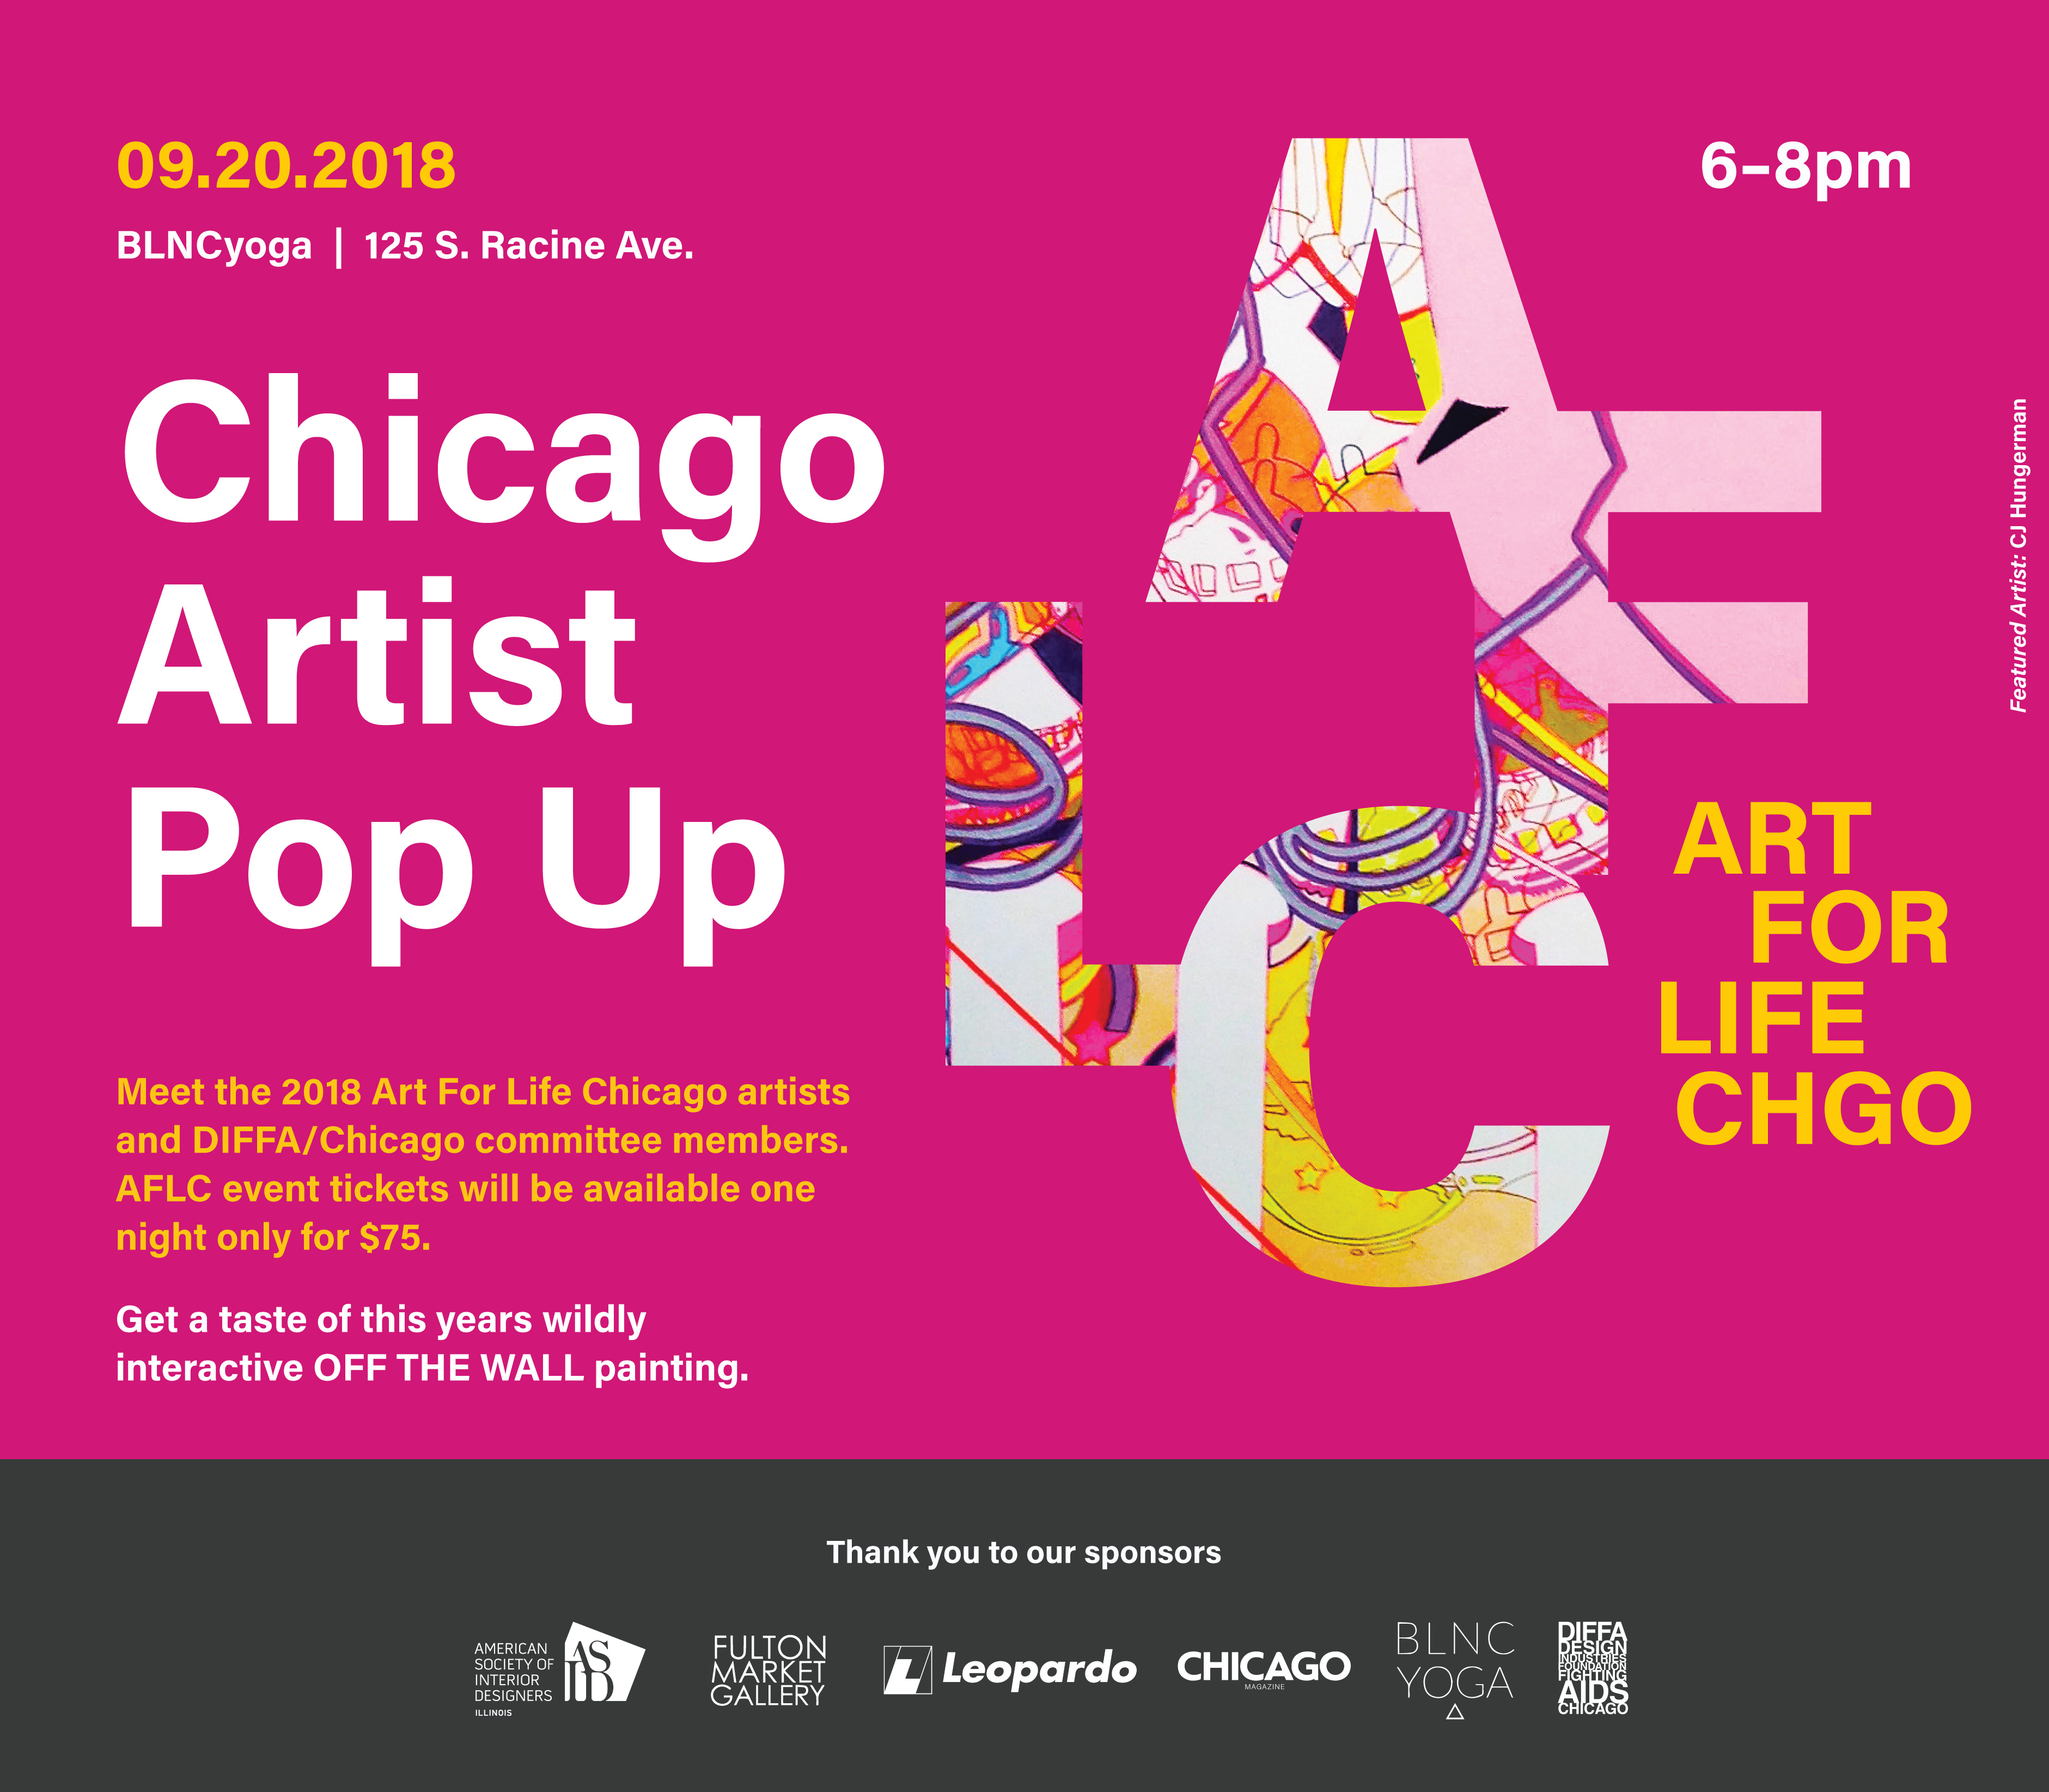 ART FOR LIFE Chicago Artist Pop Up